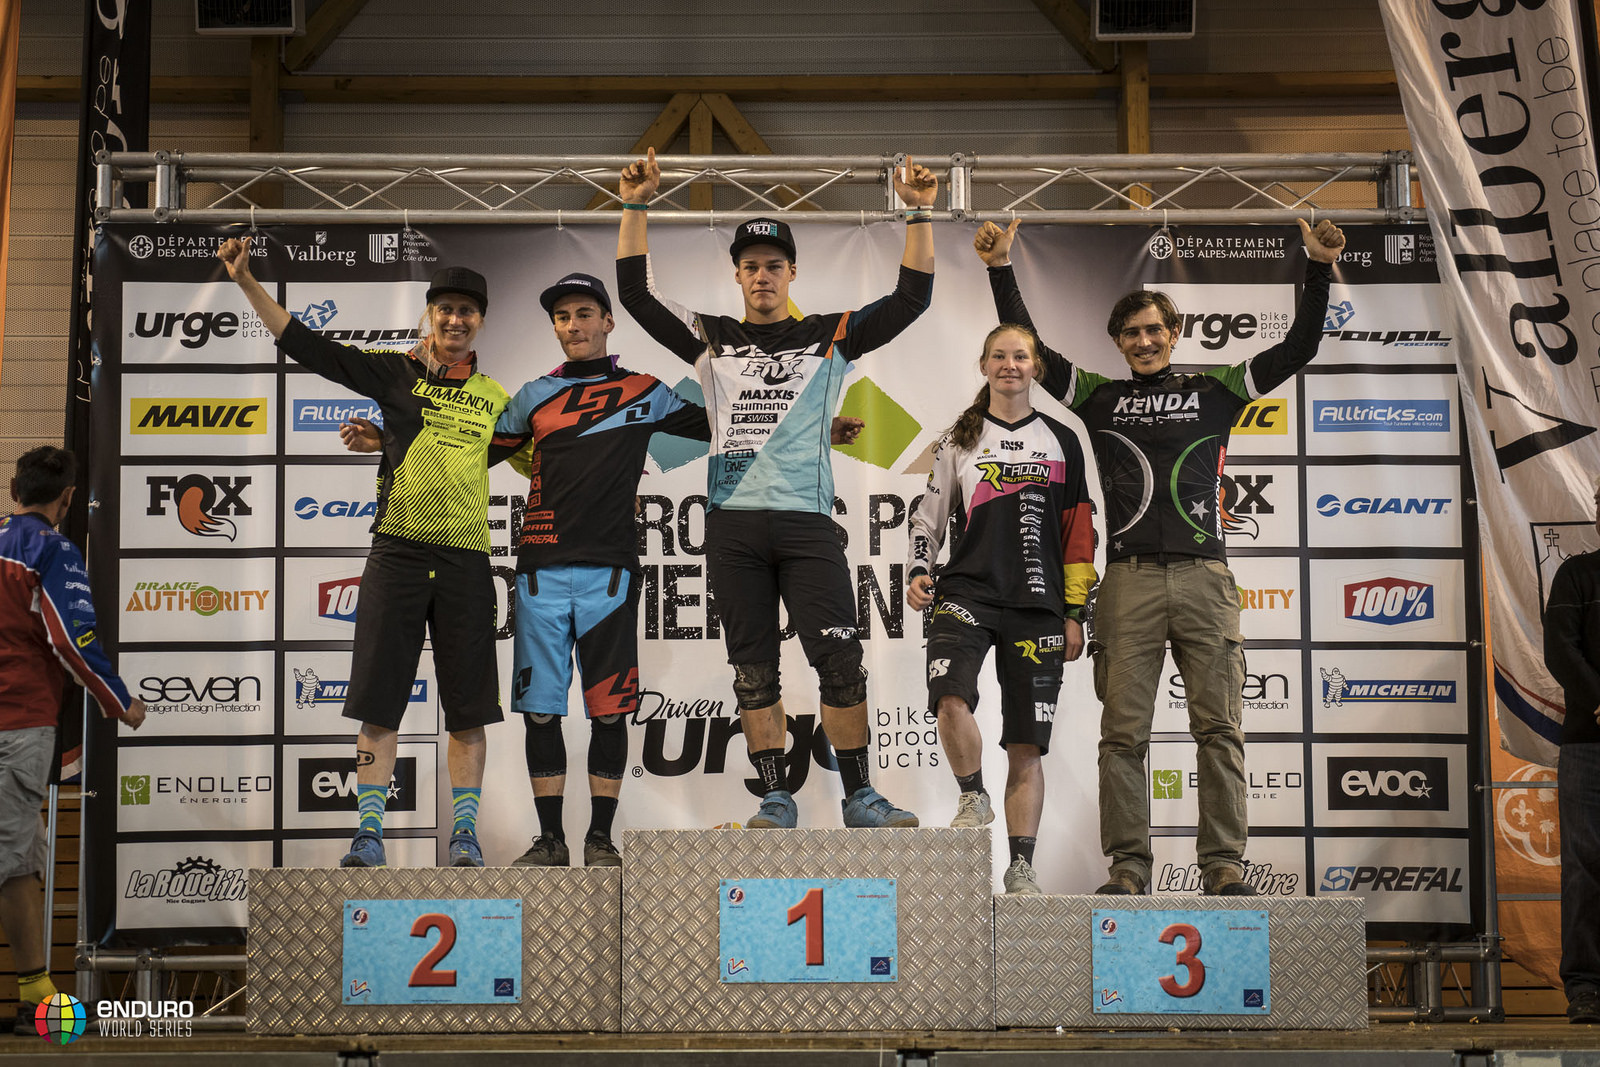 The overall series leaders, including Yeti's Richie Rude.